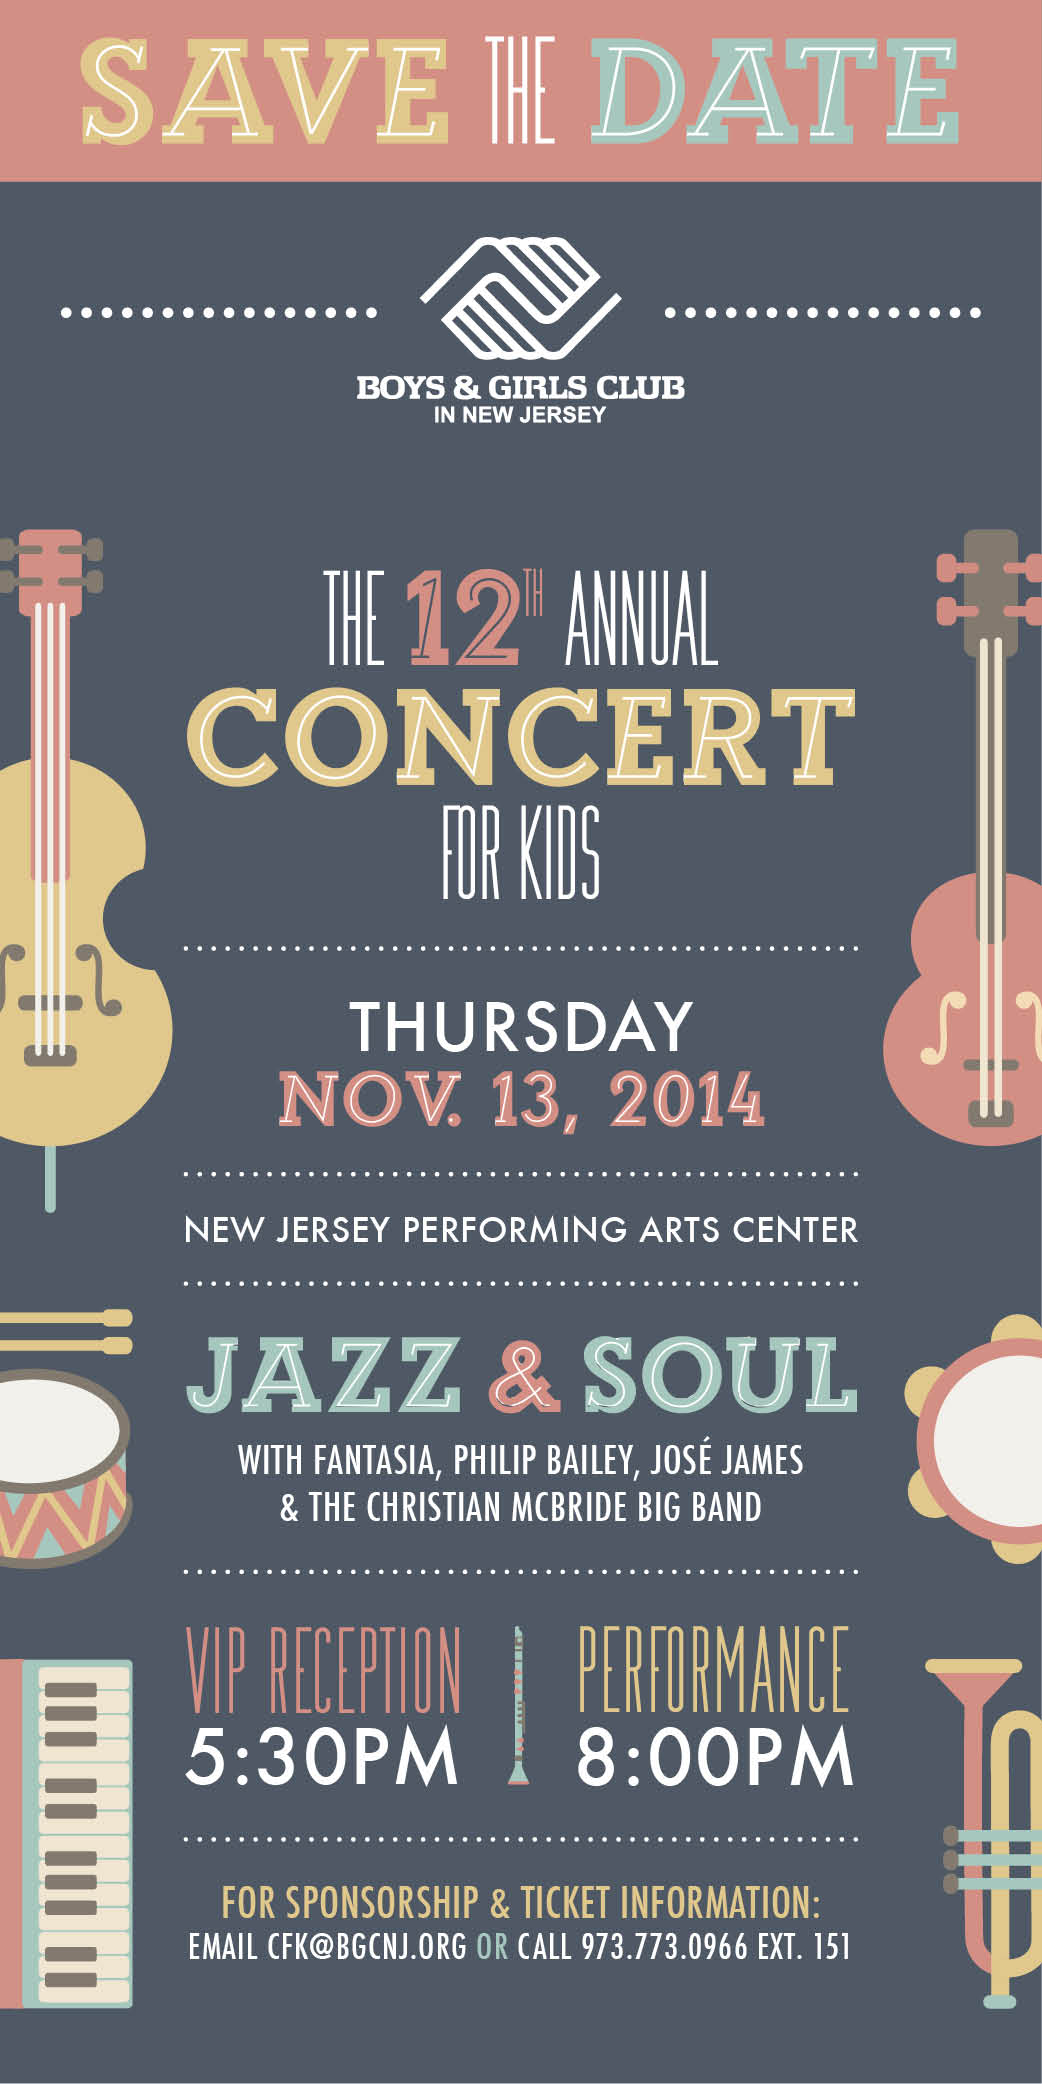 12_Annual_Concert_For_Kids_SaveTheDate_Email_R2